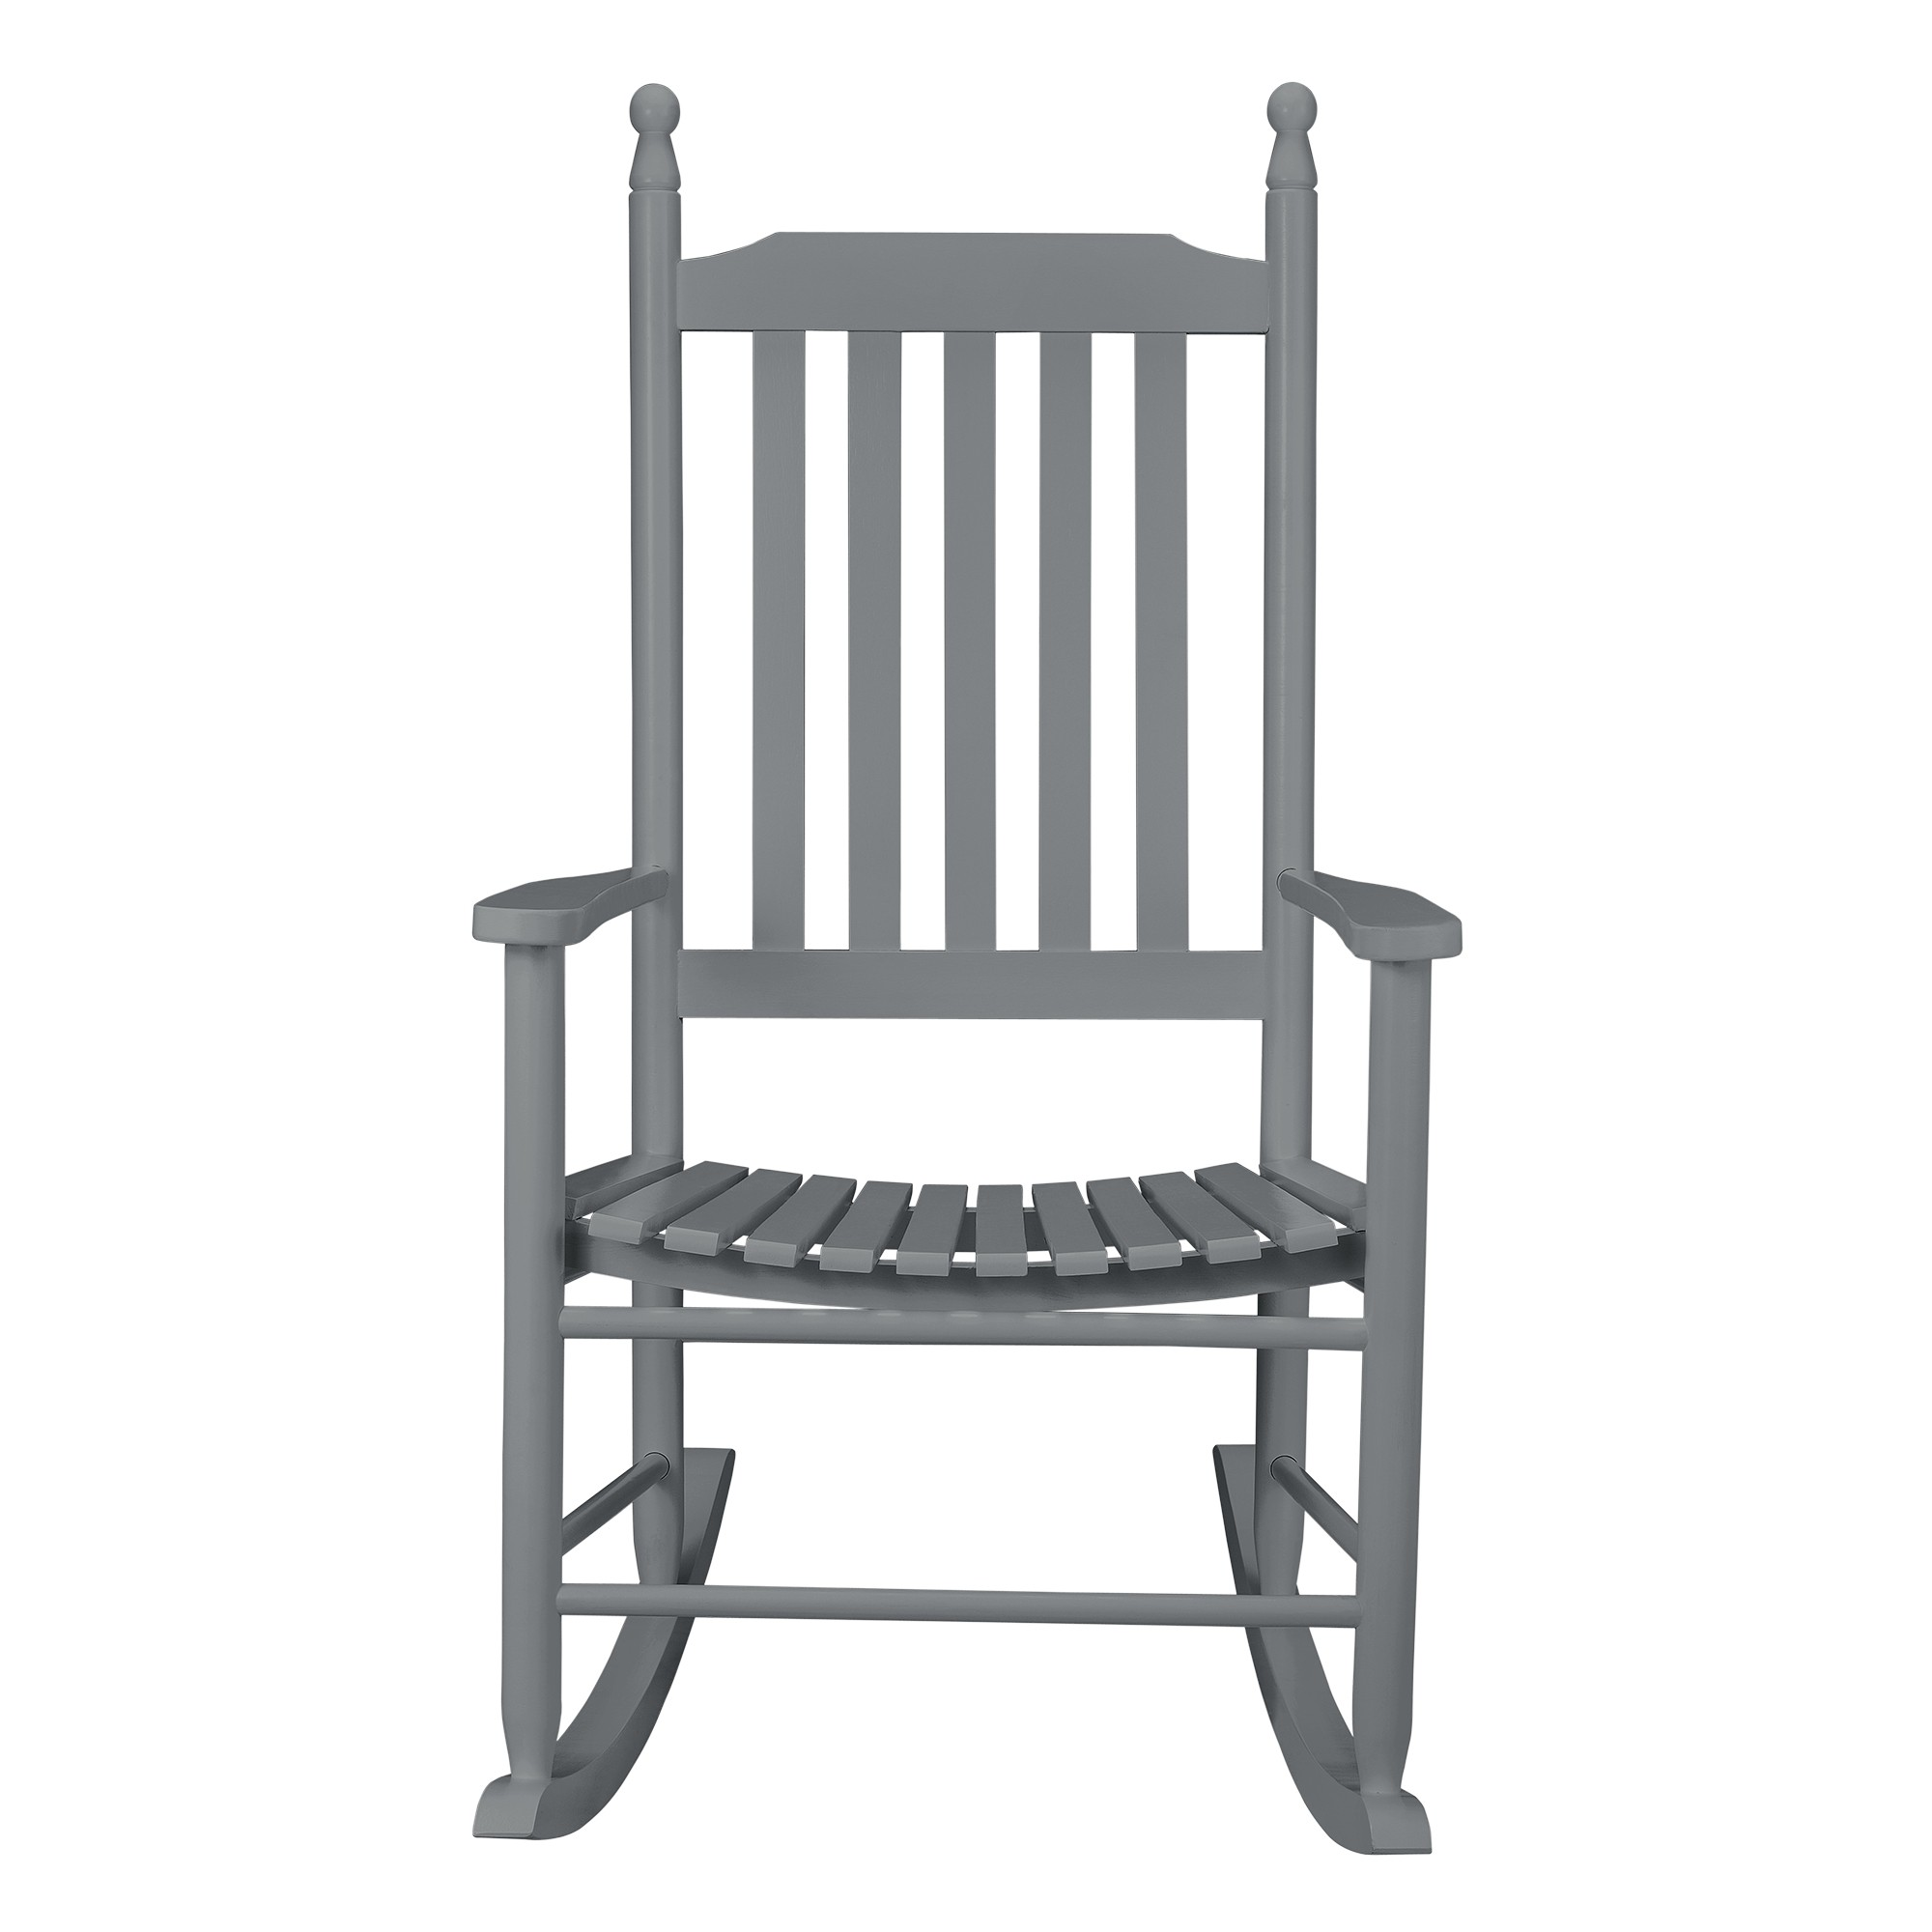 fauteuil bascule en bois gris pour chaises bascule a. Black Bedroom Furniture Sets. Home Design Ideas